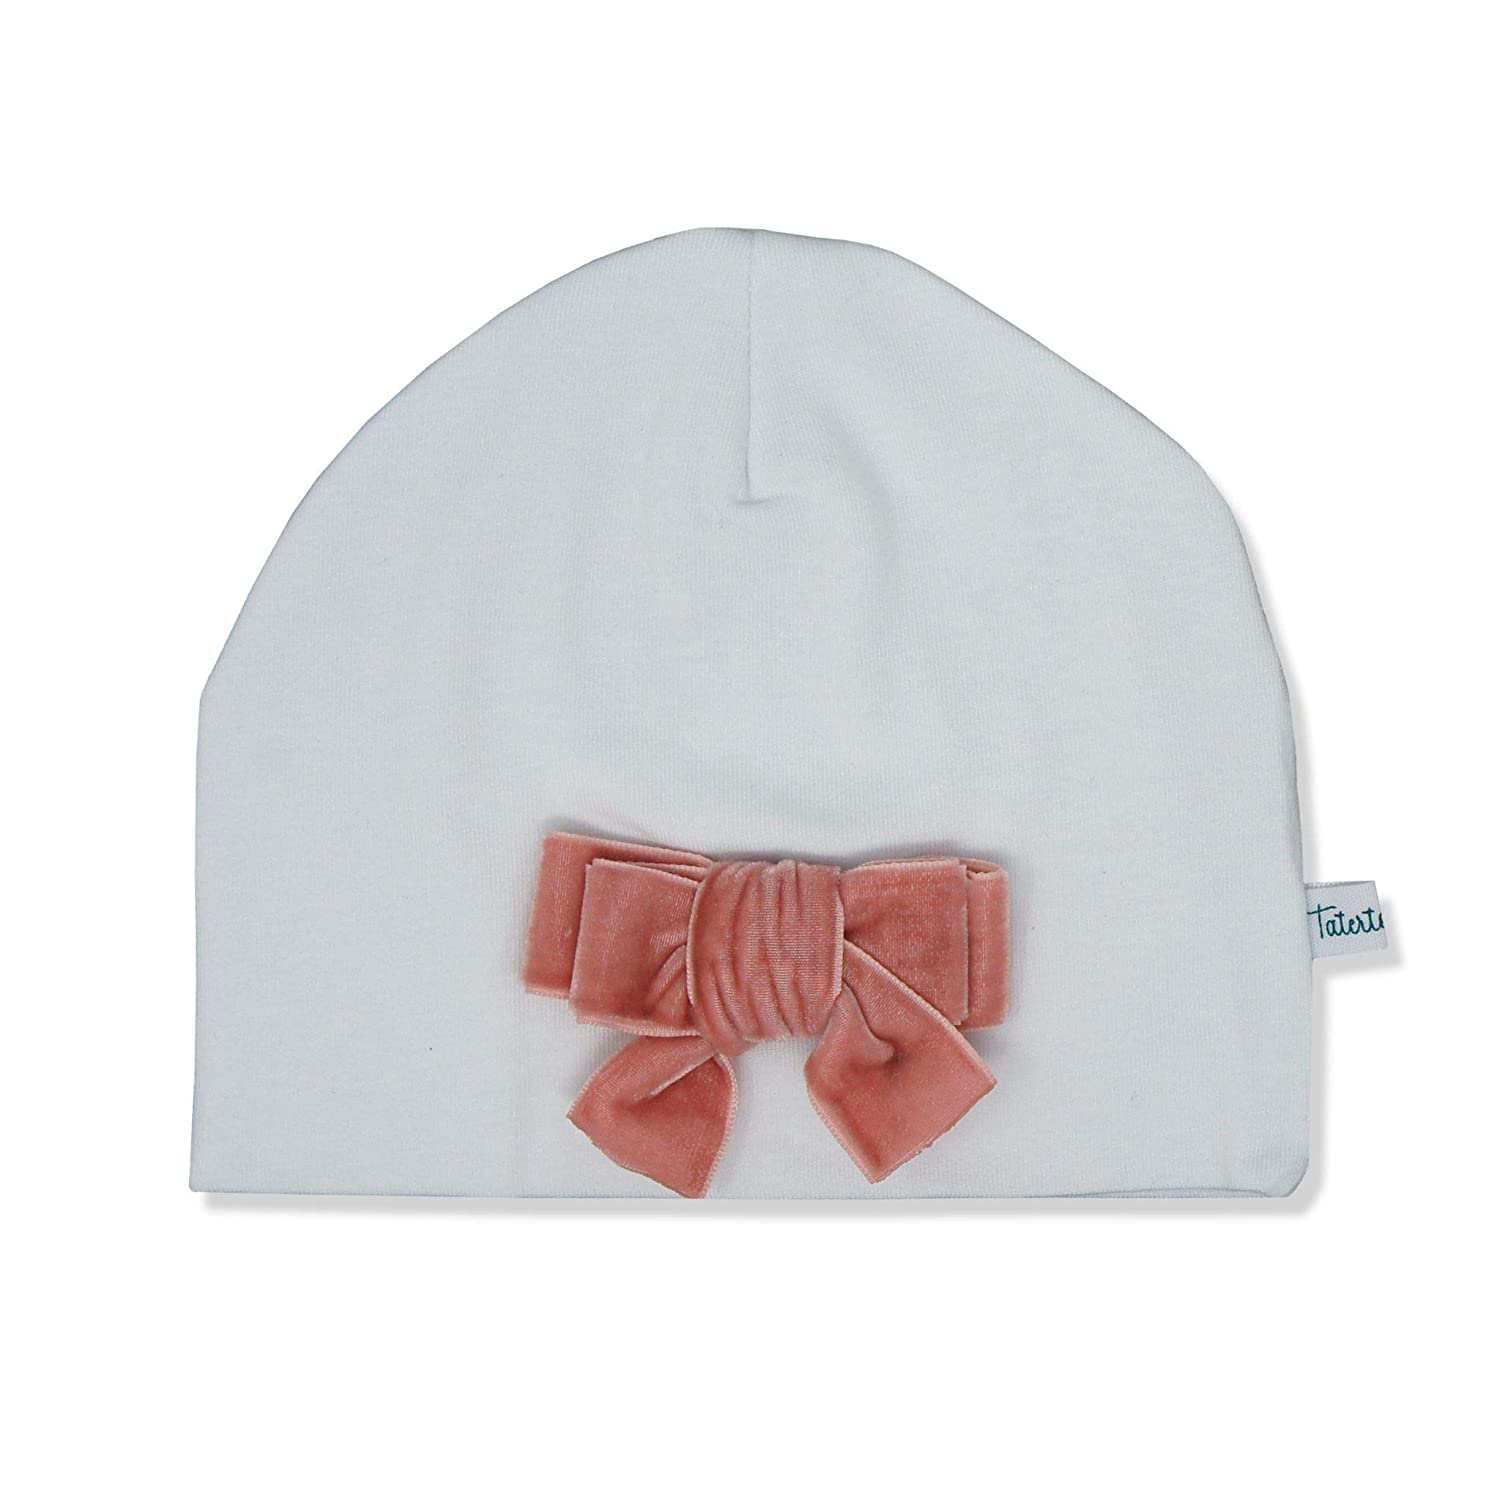 Tatertots 100% Cotton White Beanie for Newborn 0-3 Months, Warm Soft Woven Baby Hat with Pink Velvet Bow Applique